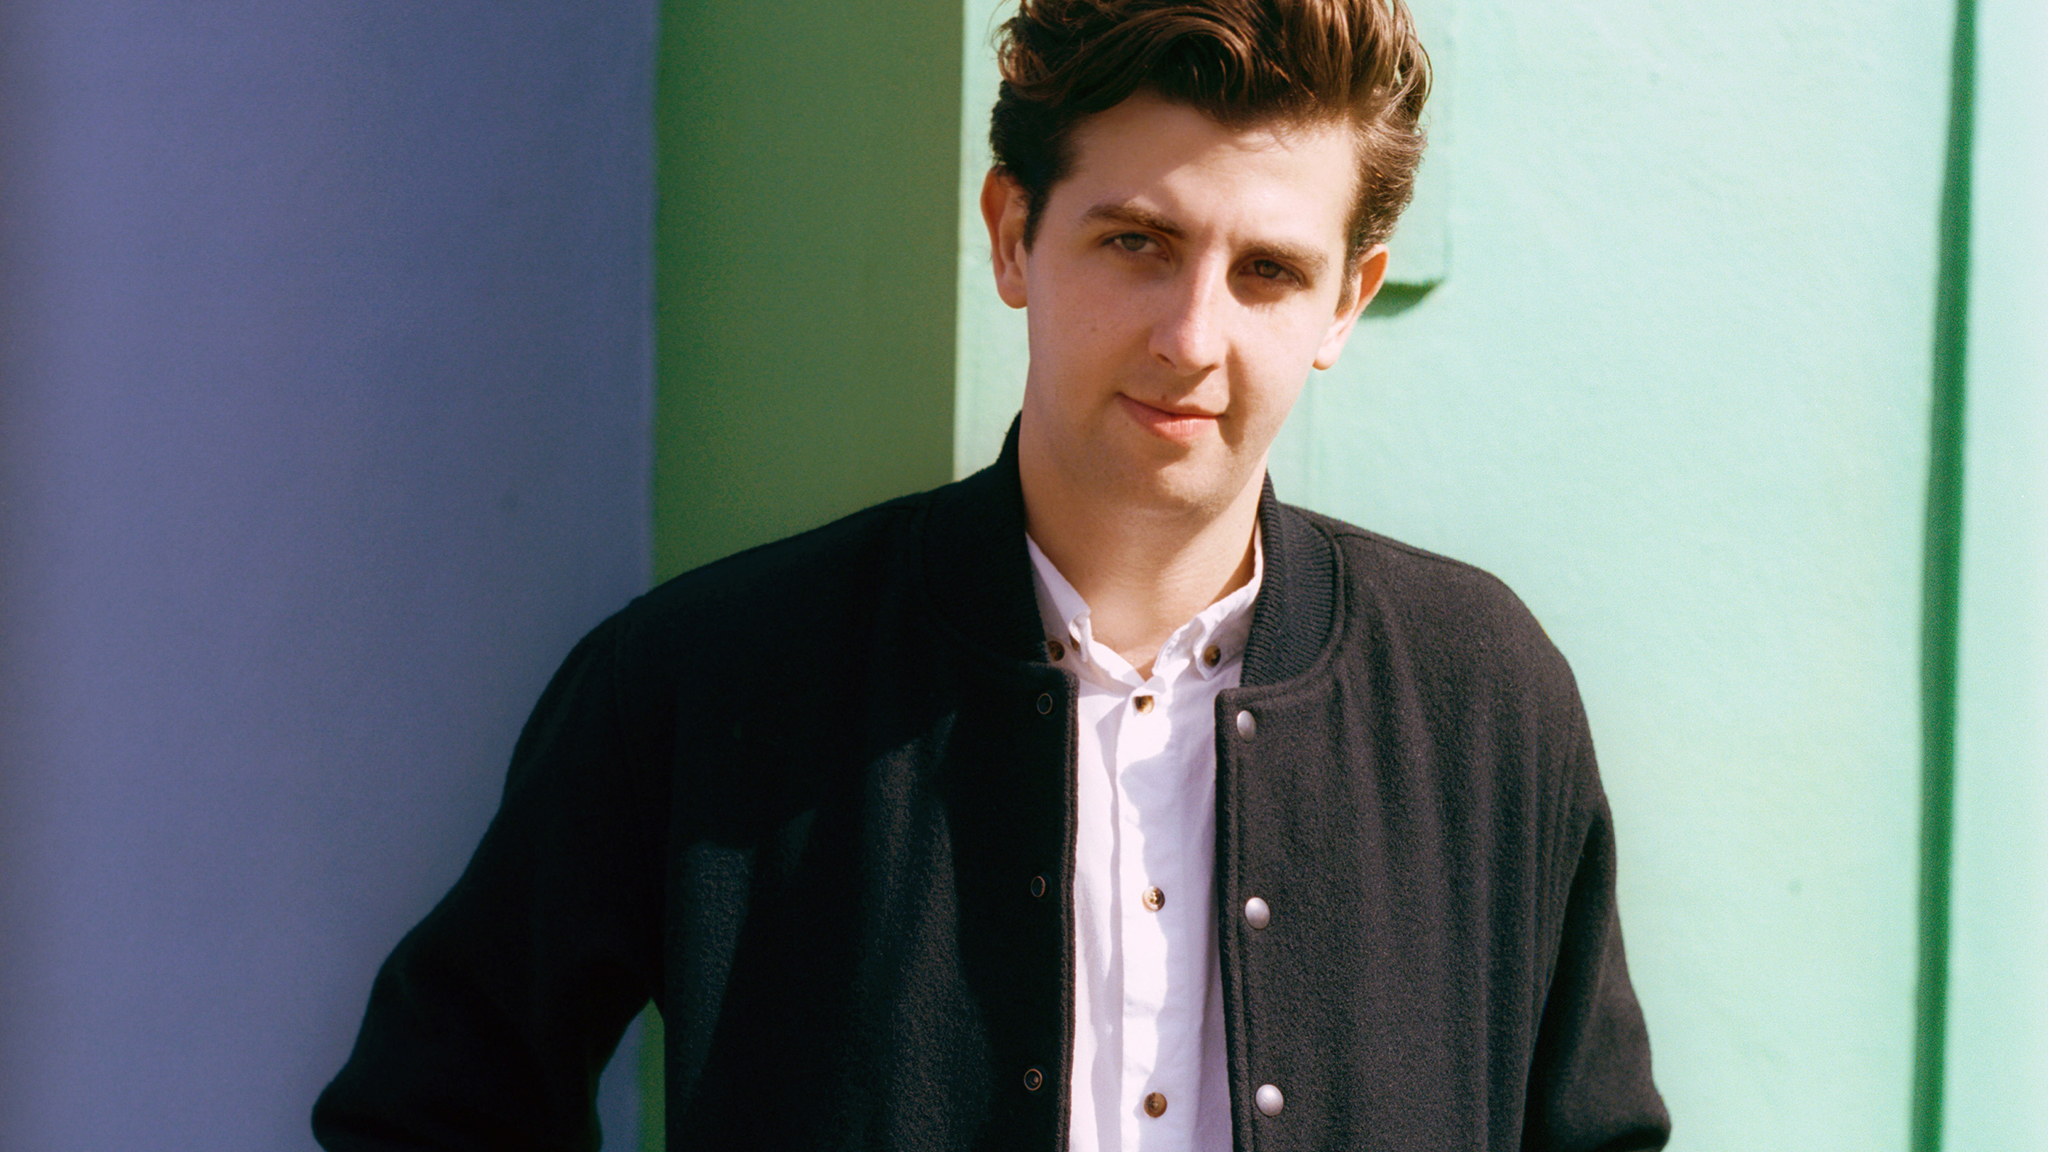 Jamie xx talks about vinyl, EDM and writing the next xx album